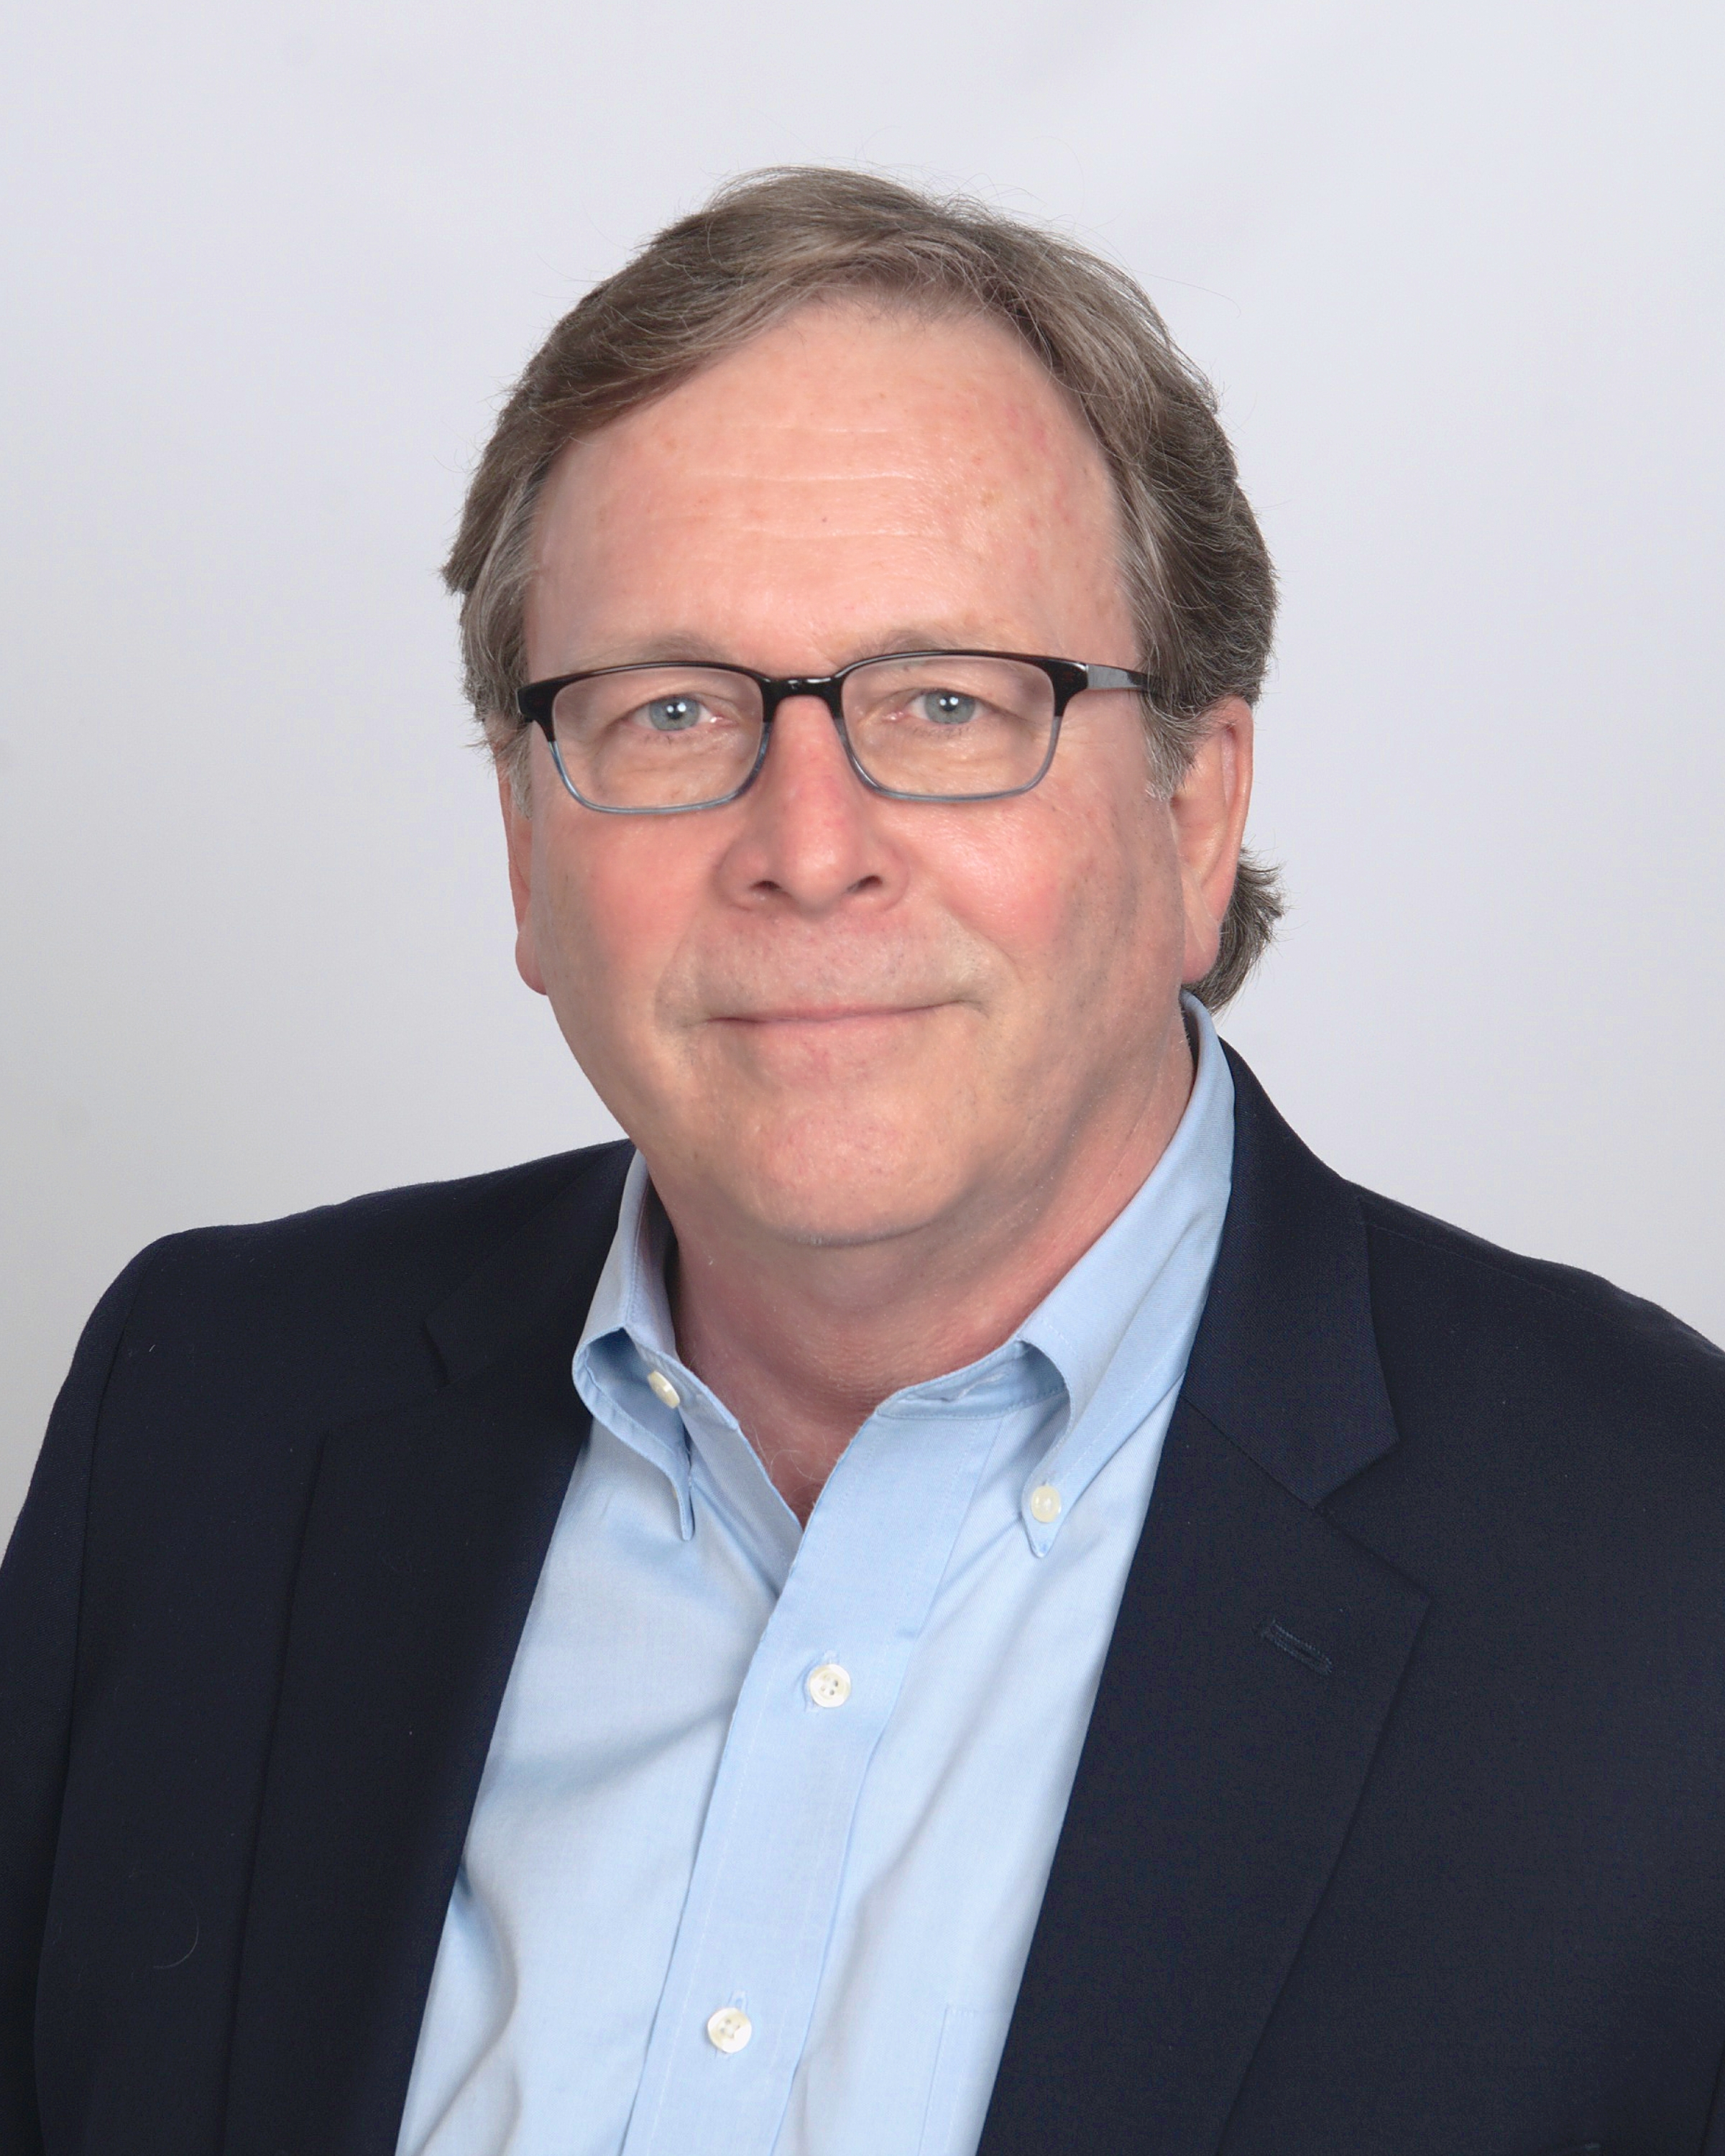 BOLDplanning Inc. Announces Naming of Rick Wimberly as Chief Executive Officer; Fulton Wold as Chairman of the Board